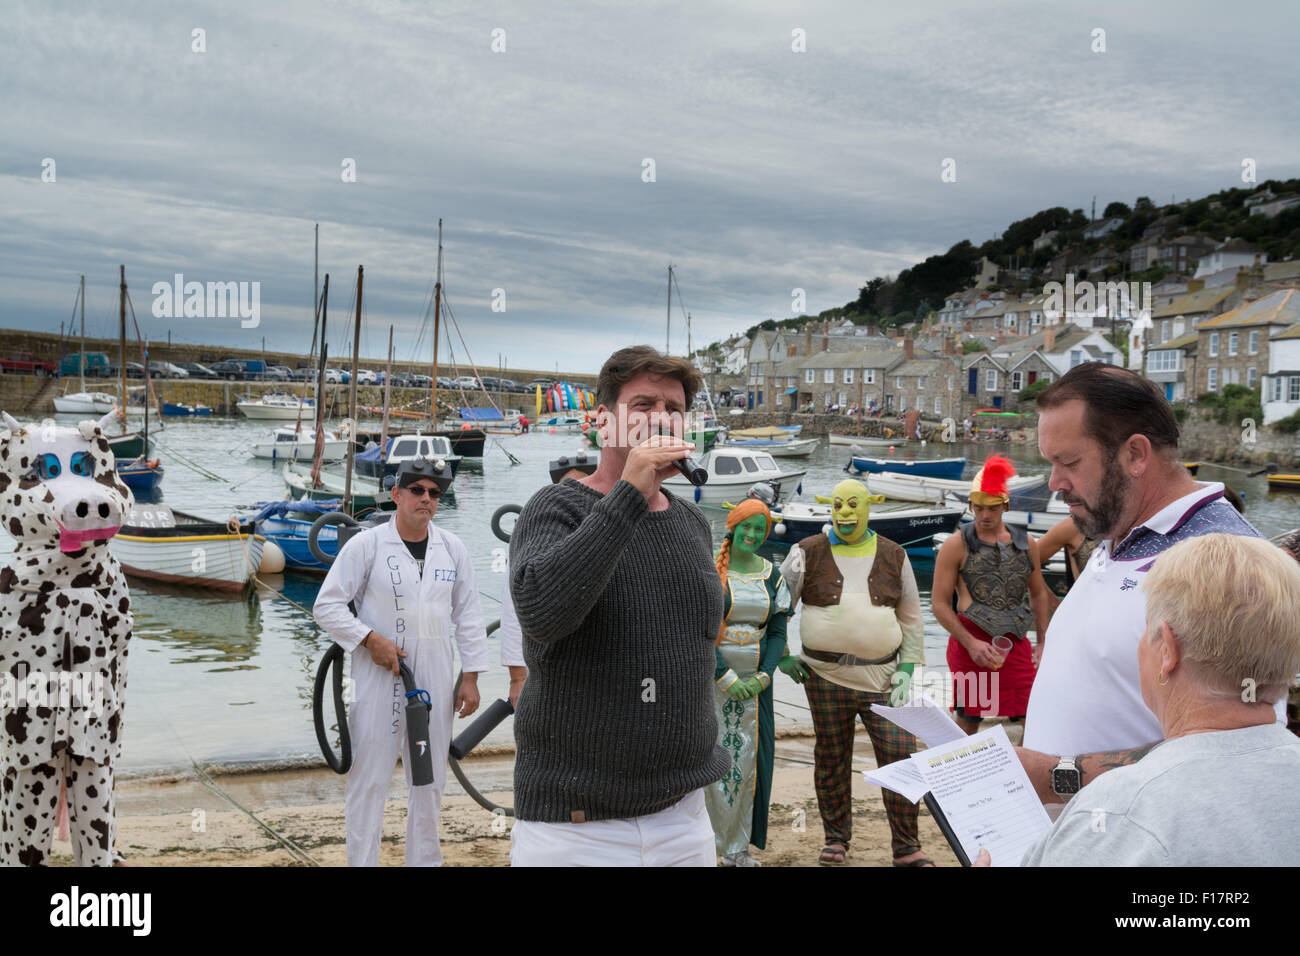 Mousehole, Cornwall, UK. 29th August 2015. Celebrity TV presenter Nick Knowles judging the best dressed crew for - Stock Image